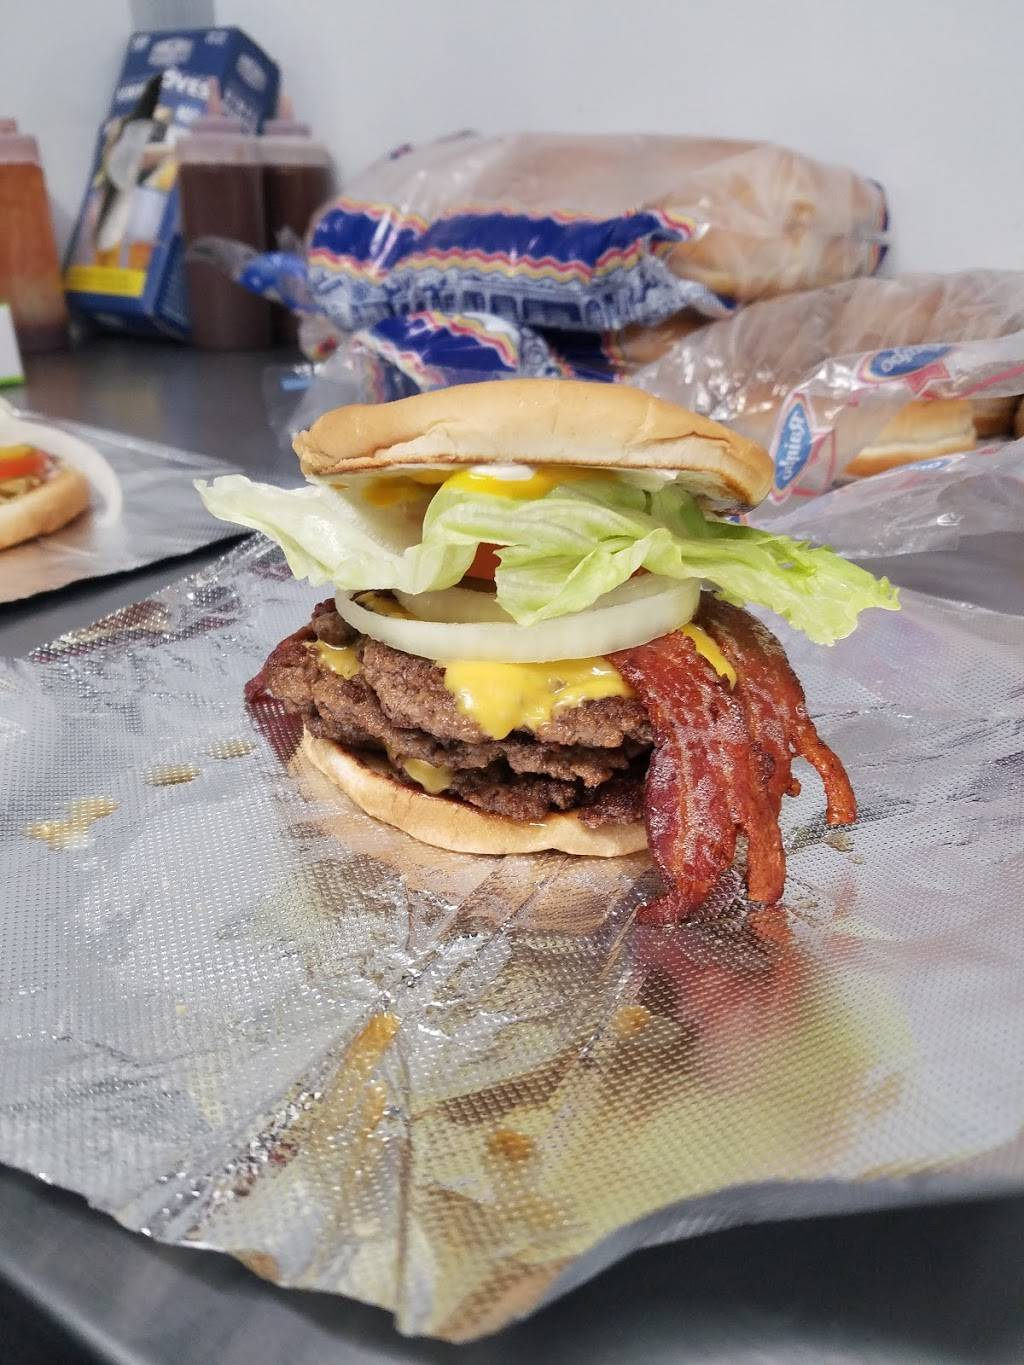 Momma Louise Bbq burgers and more | restaurant | 520 F St #2144, Wynne, AR 72396, USA | 8703626334 OR +1 870-362-6334